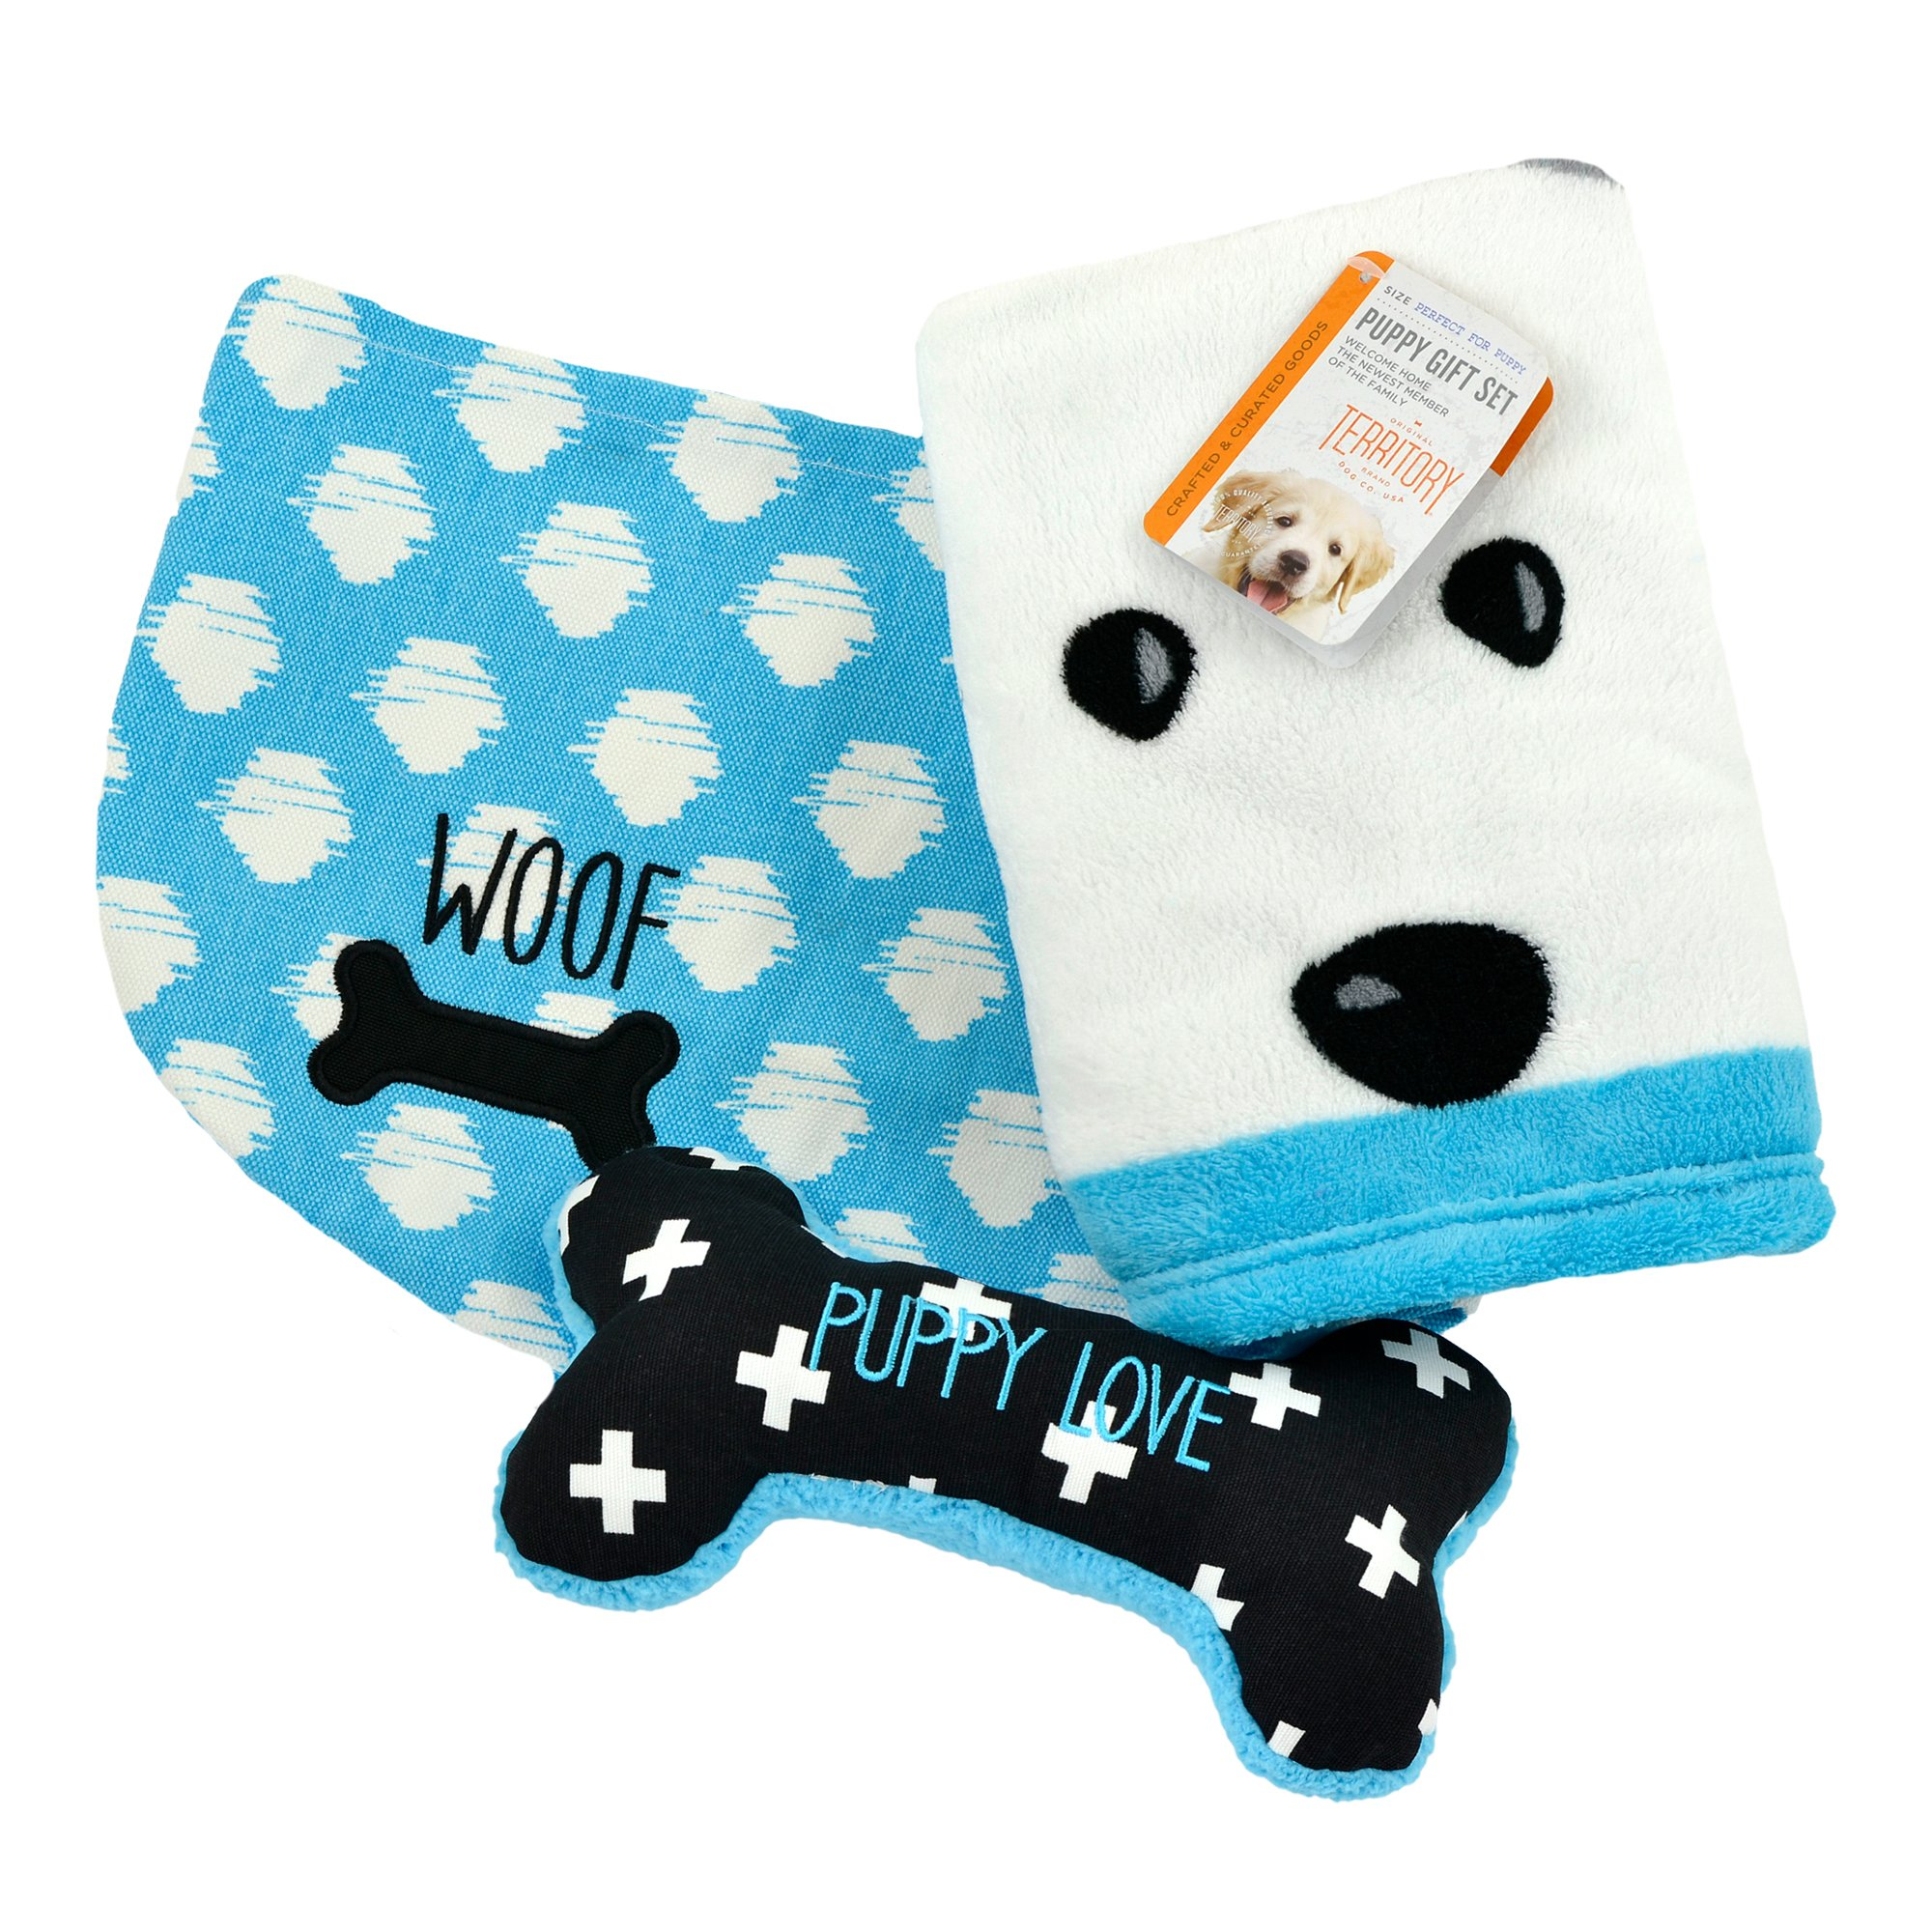 Territory Puppy Love Gift Set with Fleece Blanket Bone Toy and Canvas Storage Bin by Territory (Image #1)